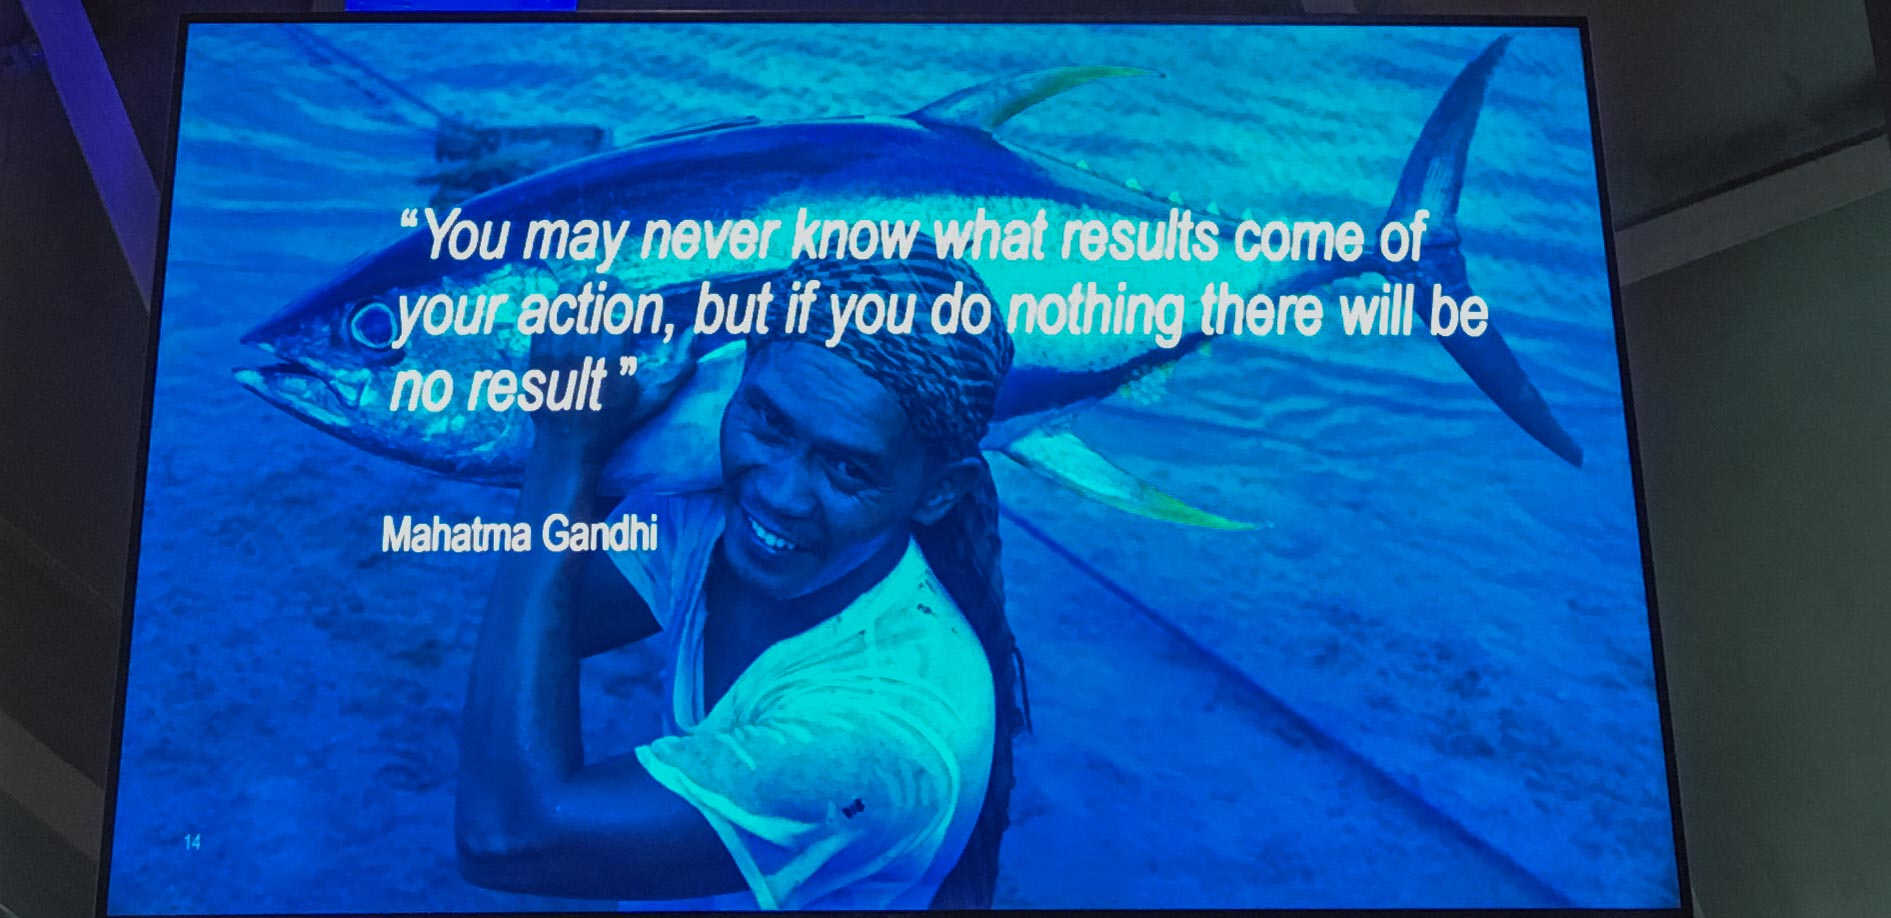 """Slide from WWF presentation at 2019 World Seafood Expo Brussels with image of a person carrying a fish and quote """"You may never know what results come of your action, but if you do nothing there will be no result"""" - Mahatma Gandhi"""